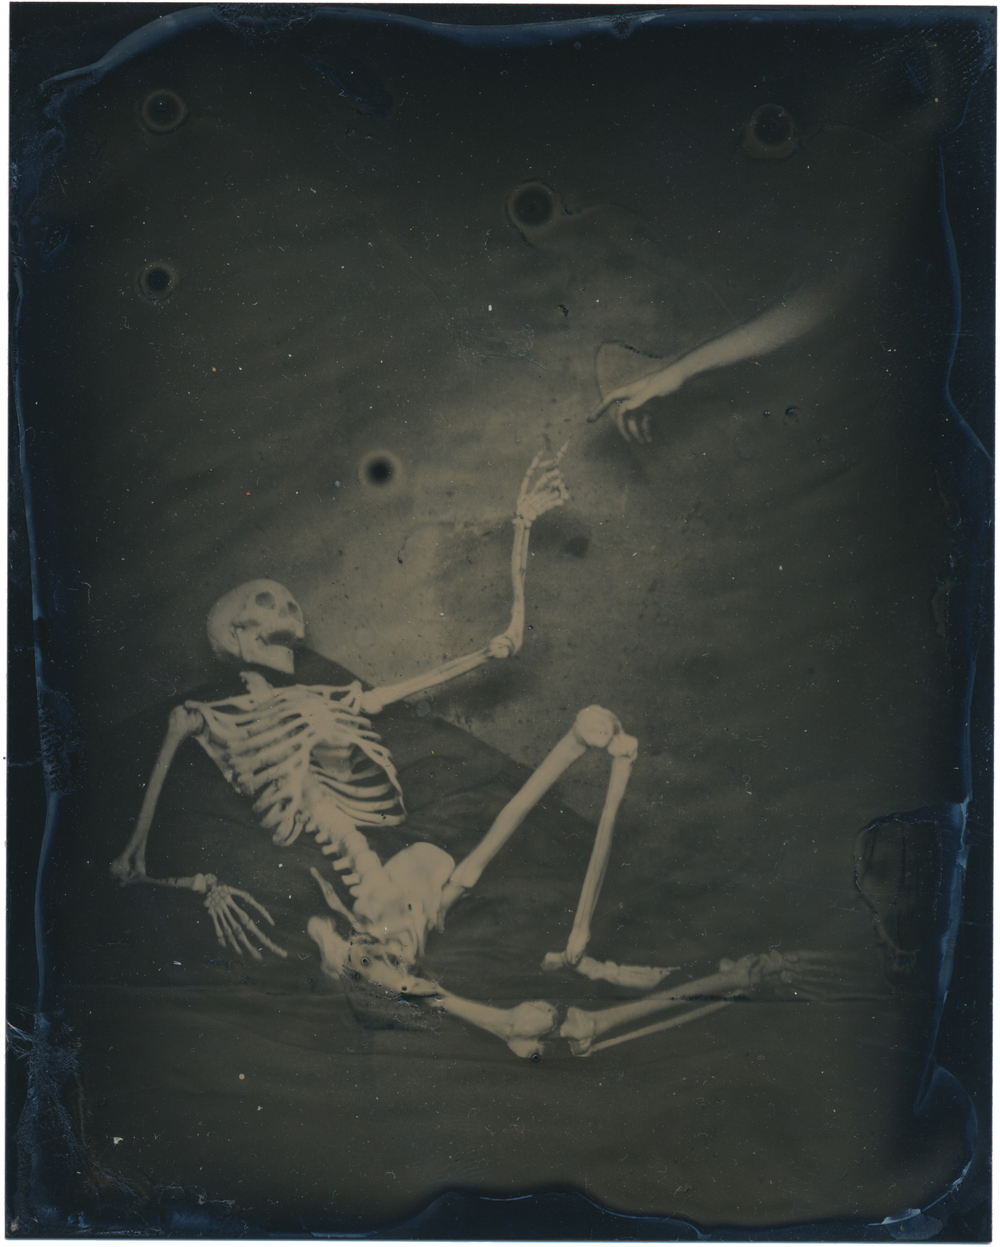 After the Creation of Adam   2015  Tintype  4x5